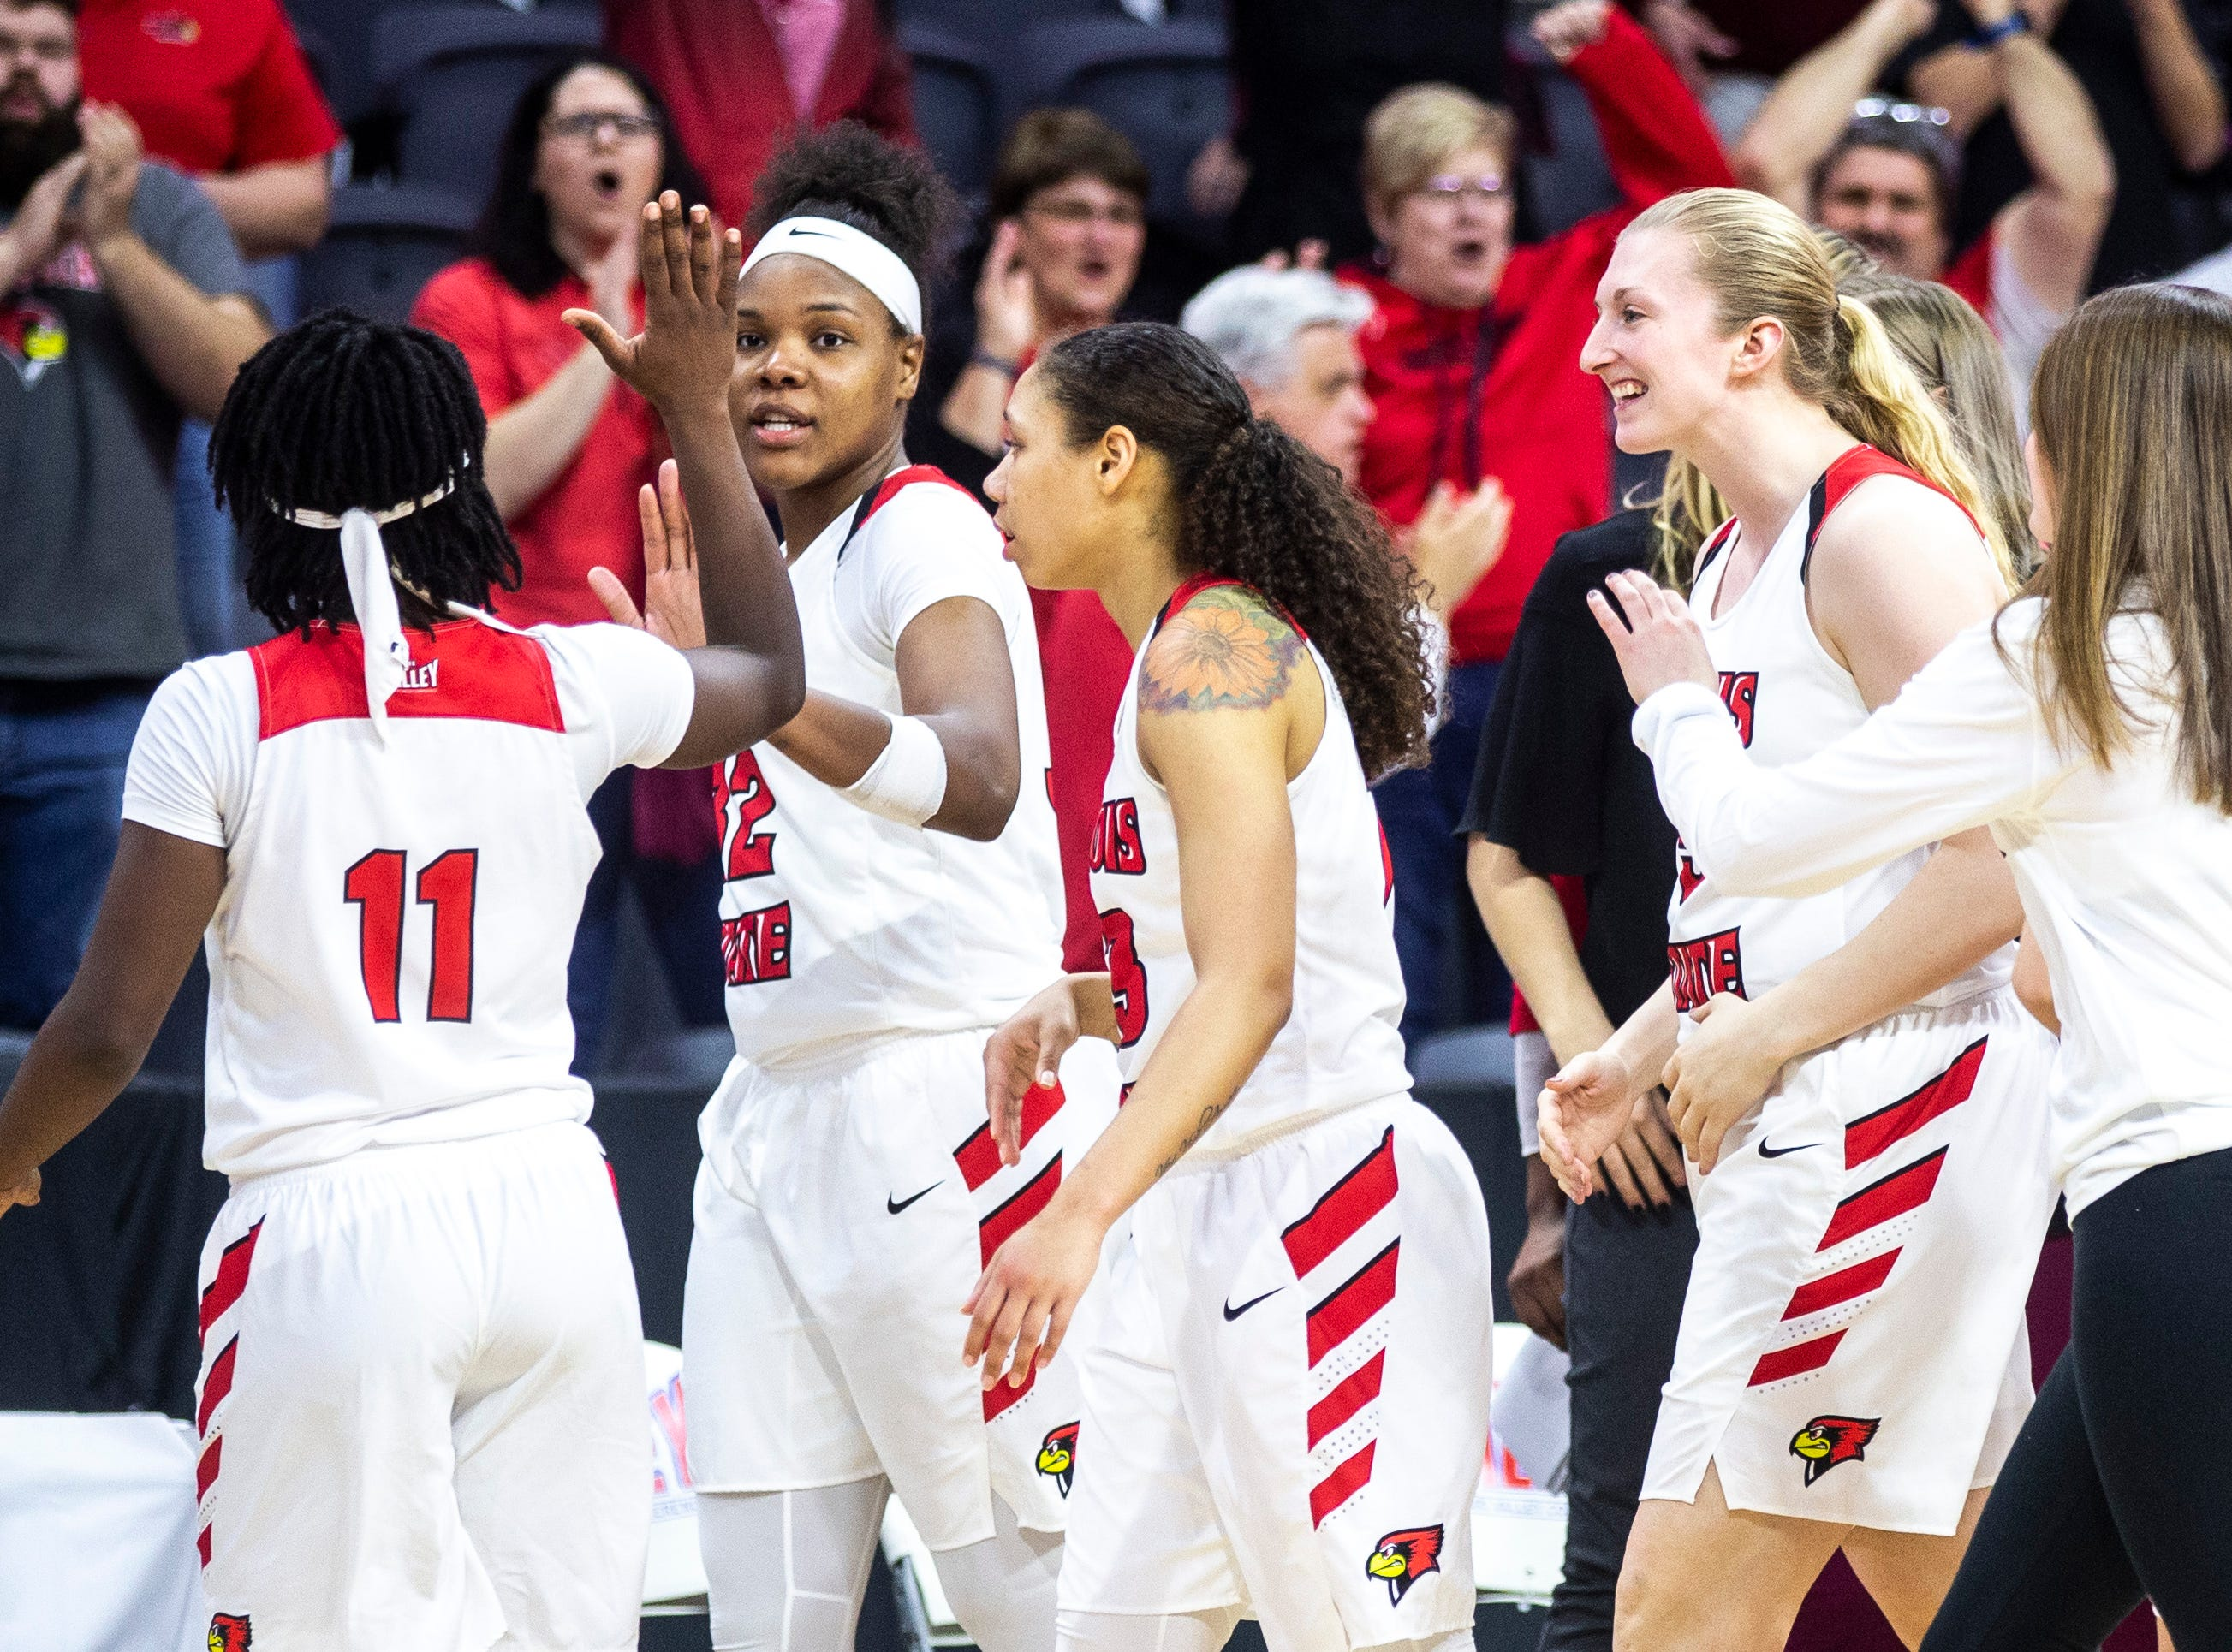 Illinois State forward Simone Goods (32) gets a high-five from Illinois State guard Tete Maggett (11) after a NCAA Missouri Valley Conference women's basketball quarterfinal tournament game against Bradley, Friday, March 15, 2019, at the TaxSlayer Center in Moline, Illinois.